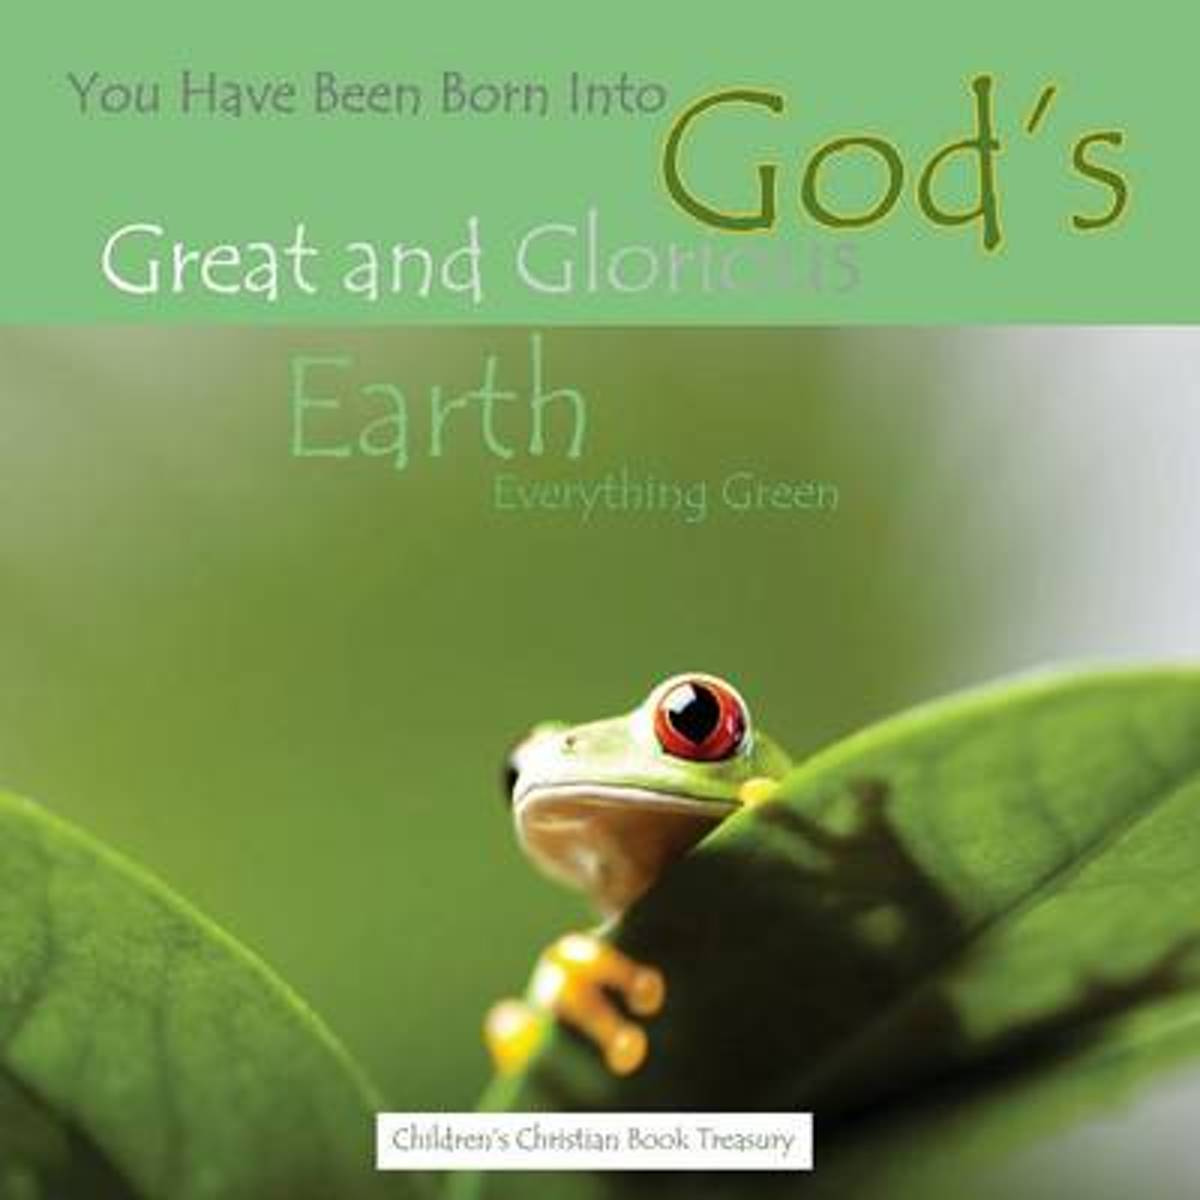 You Have Been Born Into God's Great and Glorious Earth